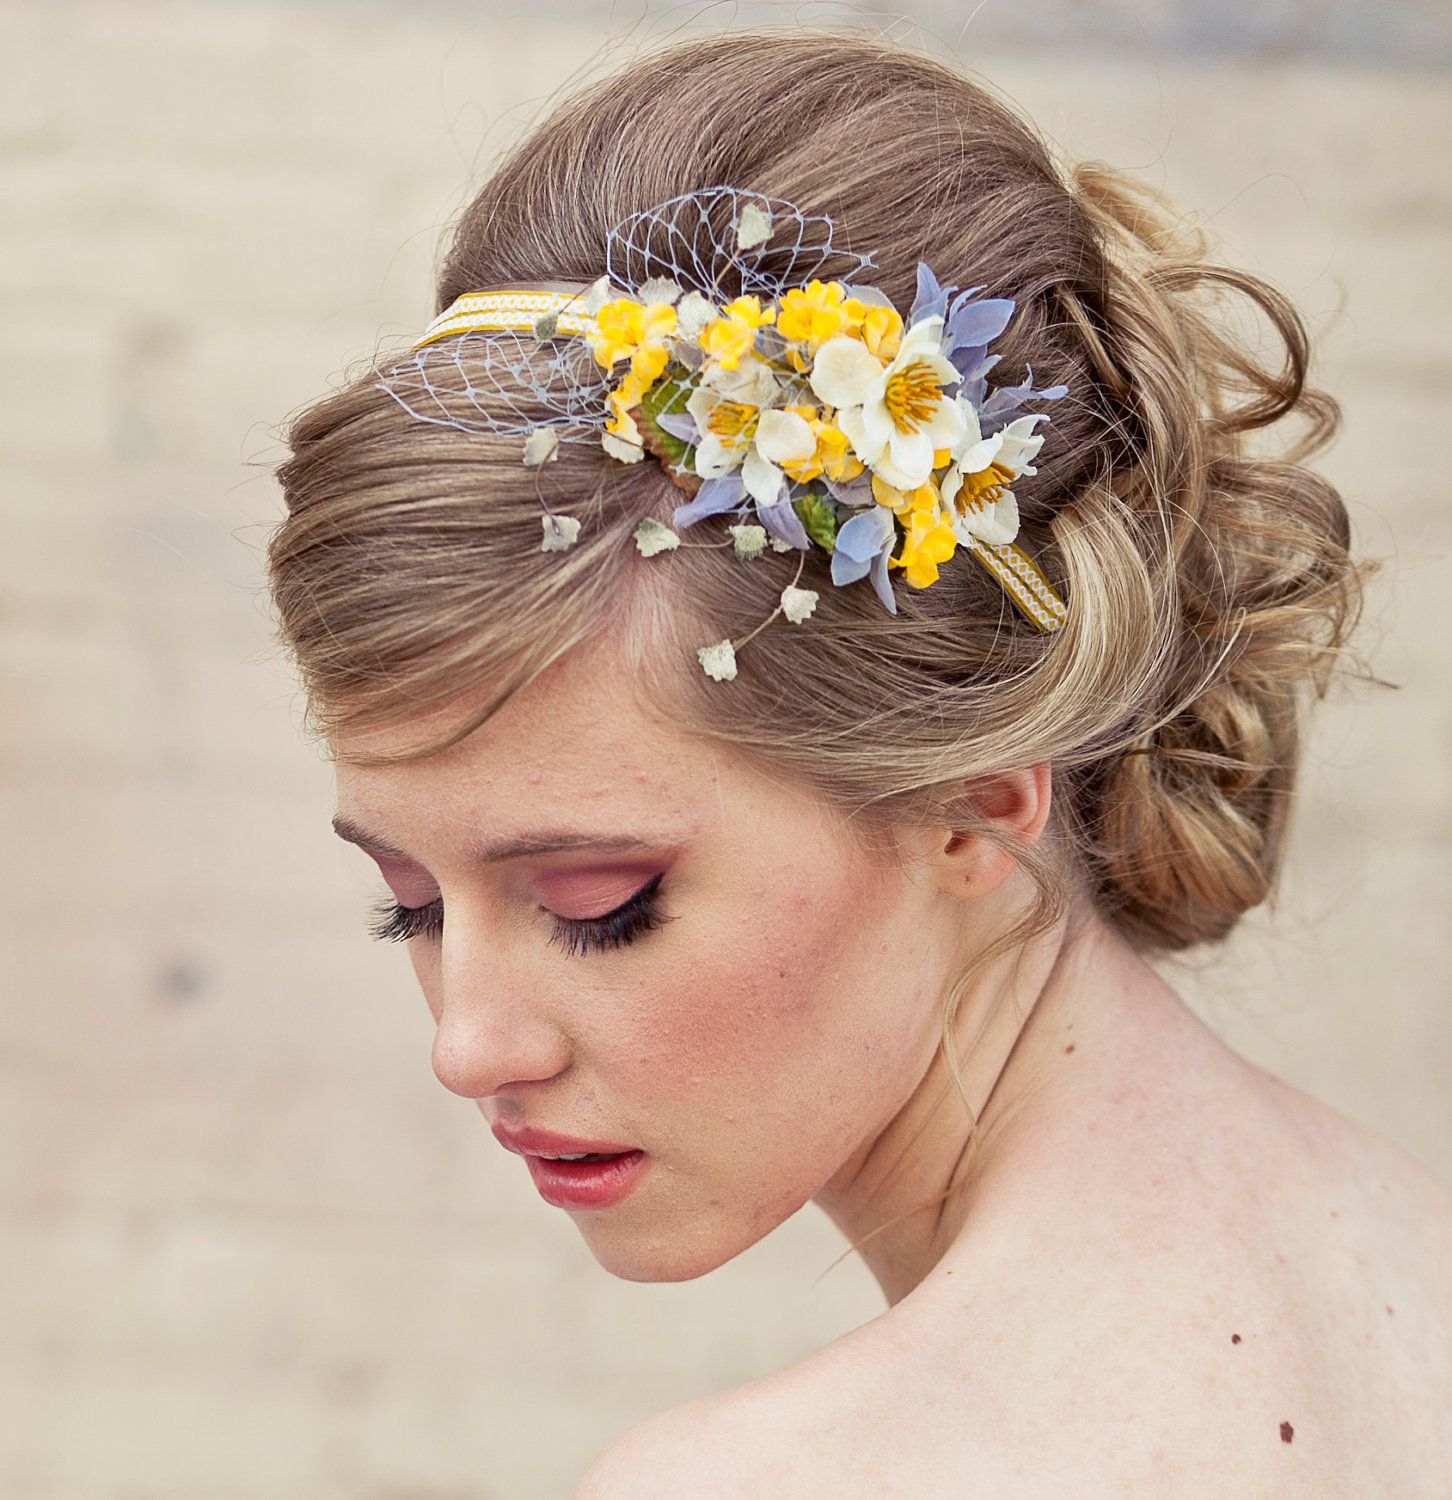 Get Inspired: Alluring #Wedding #Hairstyle Ideas. To see more: http://www.modwedding.com/2013/12/02/updo-wedding-hairstyle/